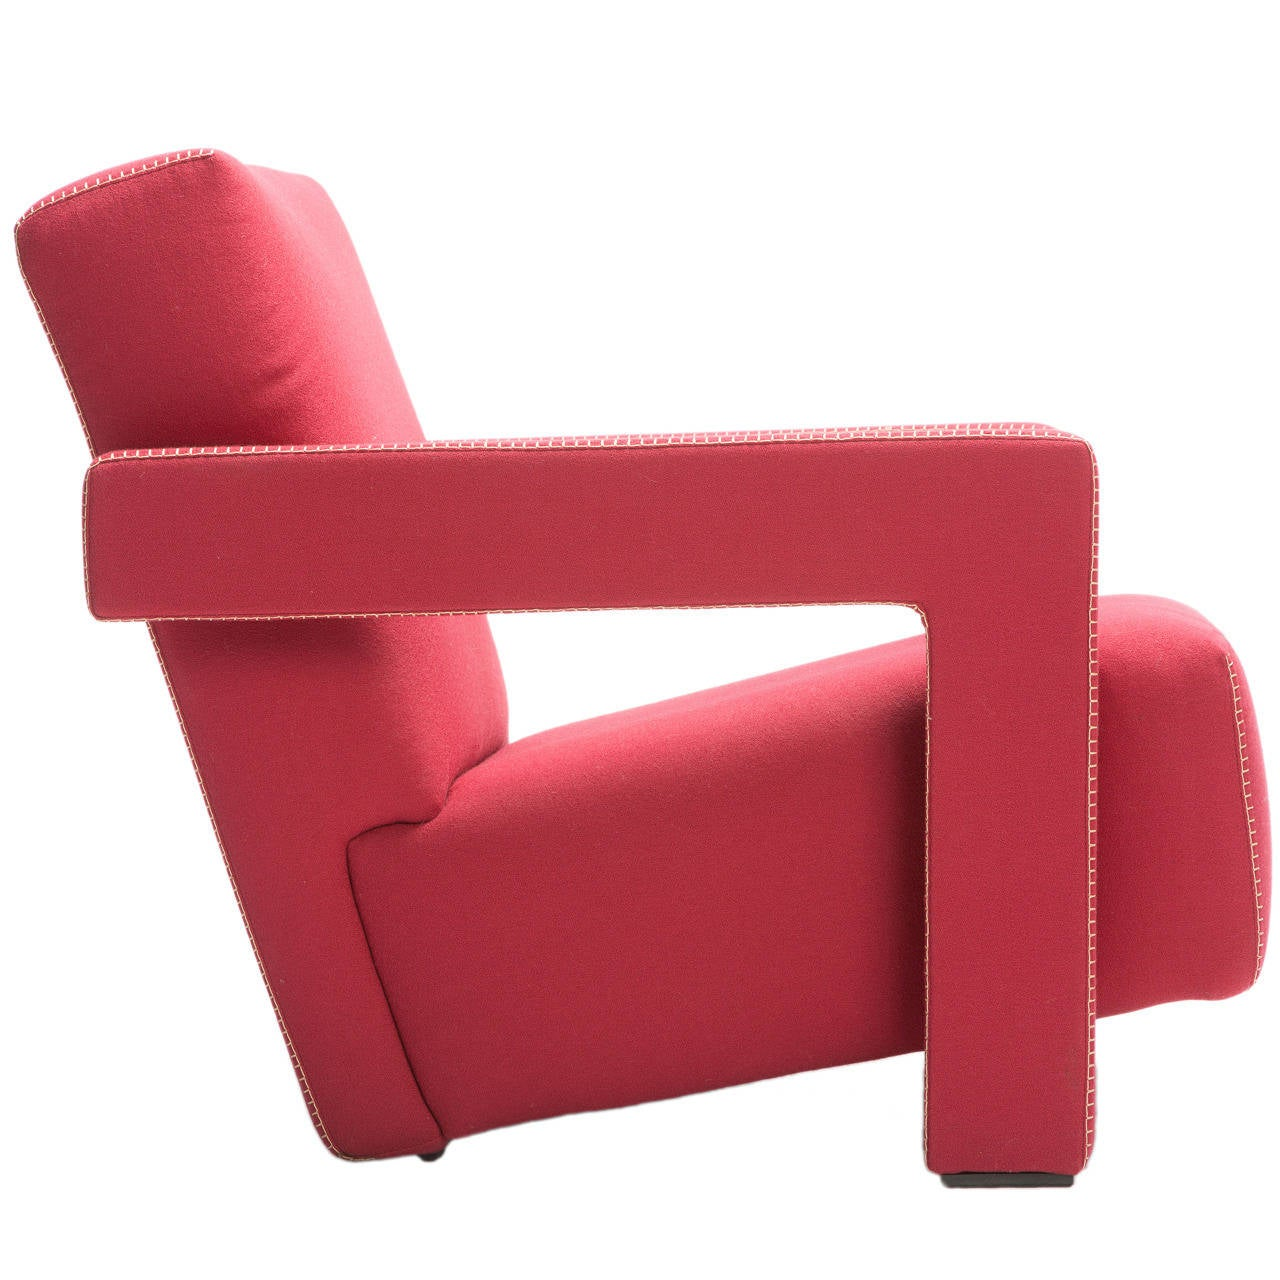 Gerrit rietveld chair for sale -  Utrecht Chair By Gerrit Rietveld For Cassina 1